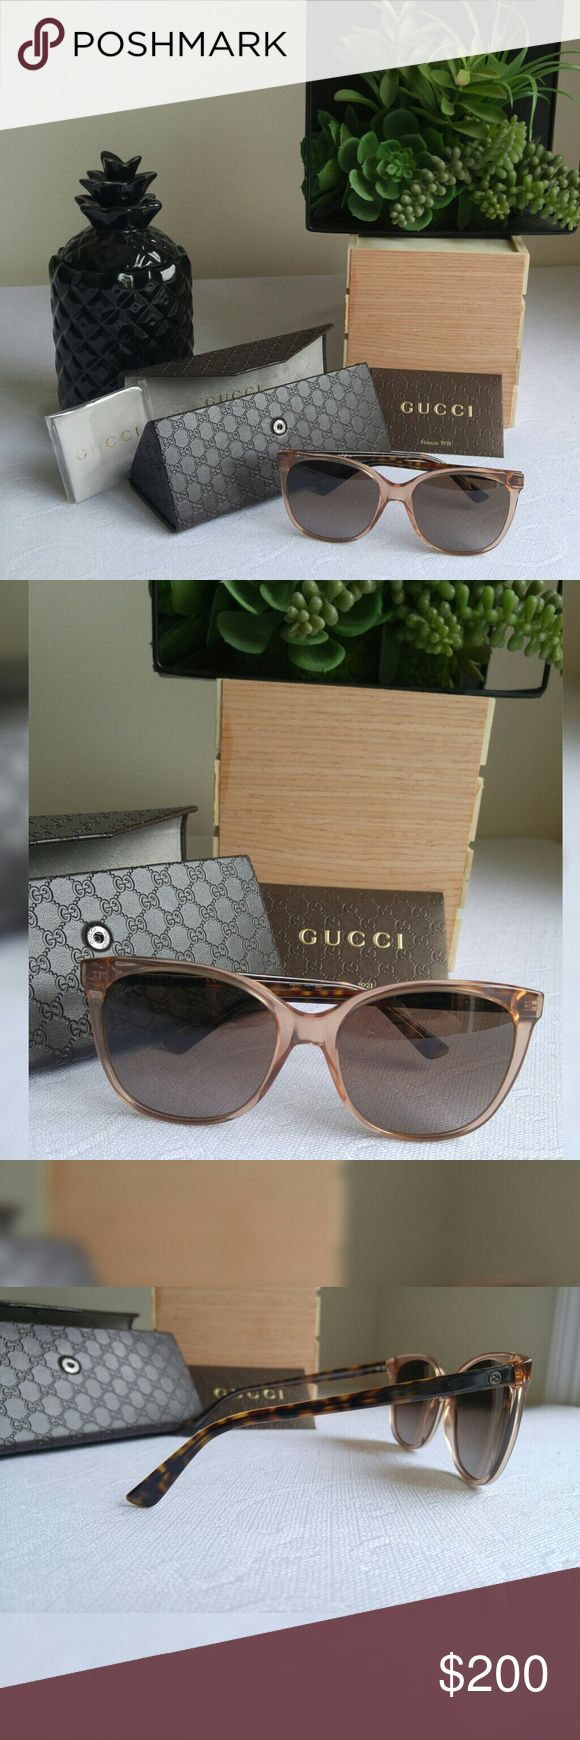 ✨ Gucci Transparent Rust Cat Eye Sunglasses Gucci translucent plastic frames. Rose gold like oversized frames. Features Gucci logo on temples. Tortoise shell patterned arms. 100% UV Protection. Comes with original hard case, cleaning cloth, and literature.  ✨ Condition is NWT no flaws.  ✨✨Check out my other listings for a bundle discount. Happy to answer any questions. ☺☺ Gucci Accessories Sunglasses